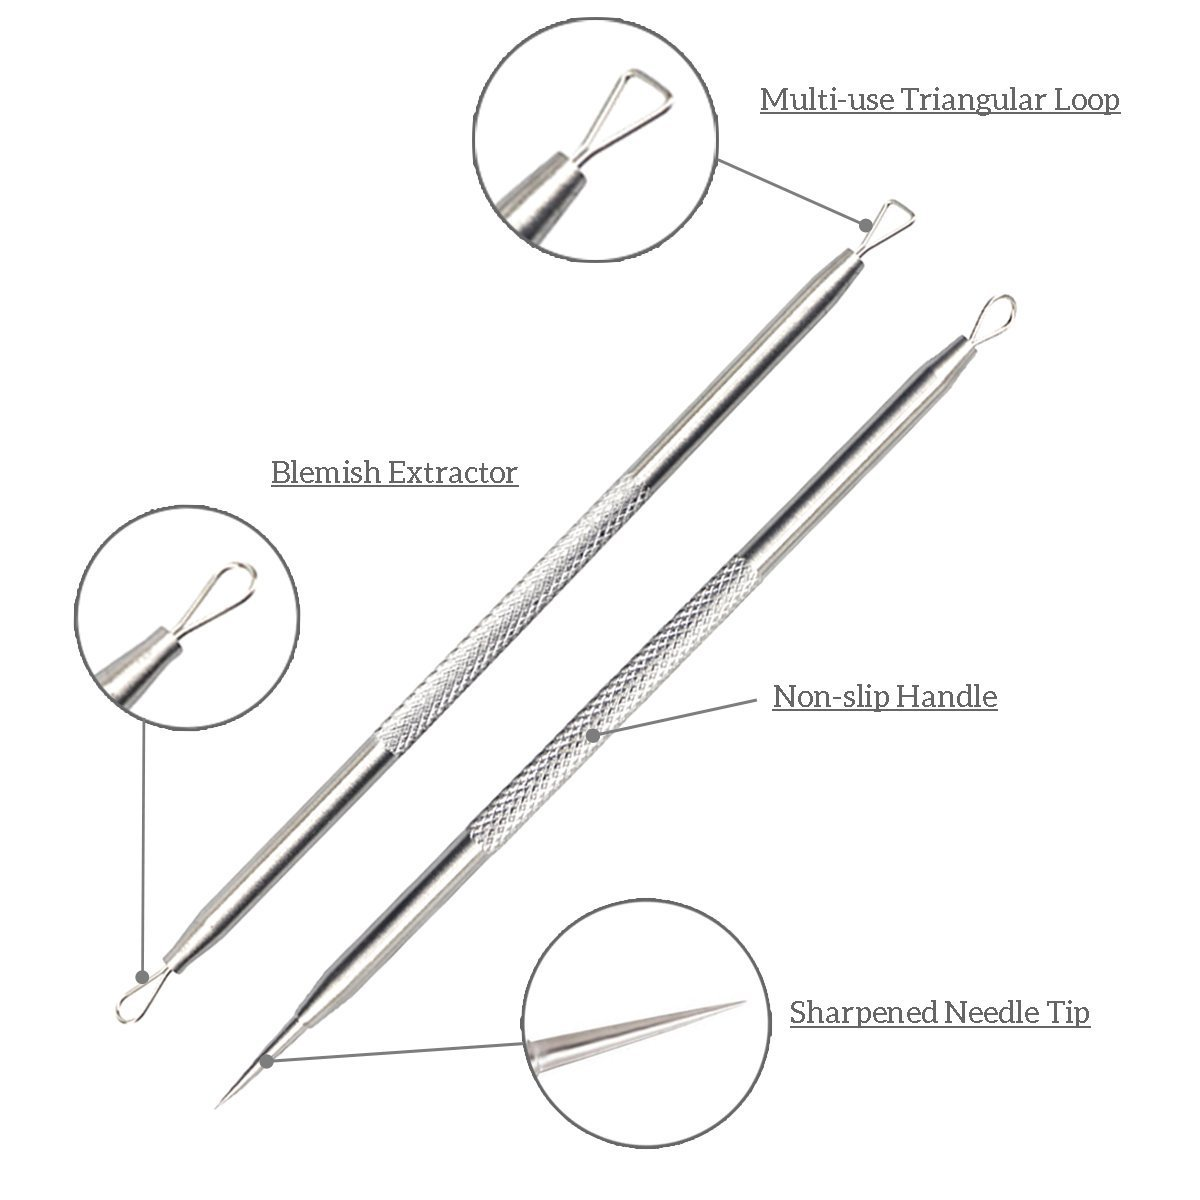 Beautyer Blackhead Remover Kit Comedone Extractor Tool Stainless Steel Removal Kit for Acne Blemish Whitehead Treatment - 5Pcs Zit Extractor Tweezers